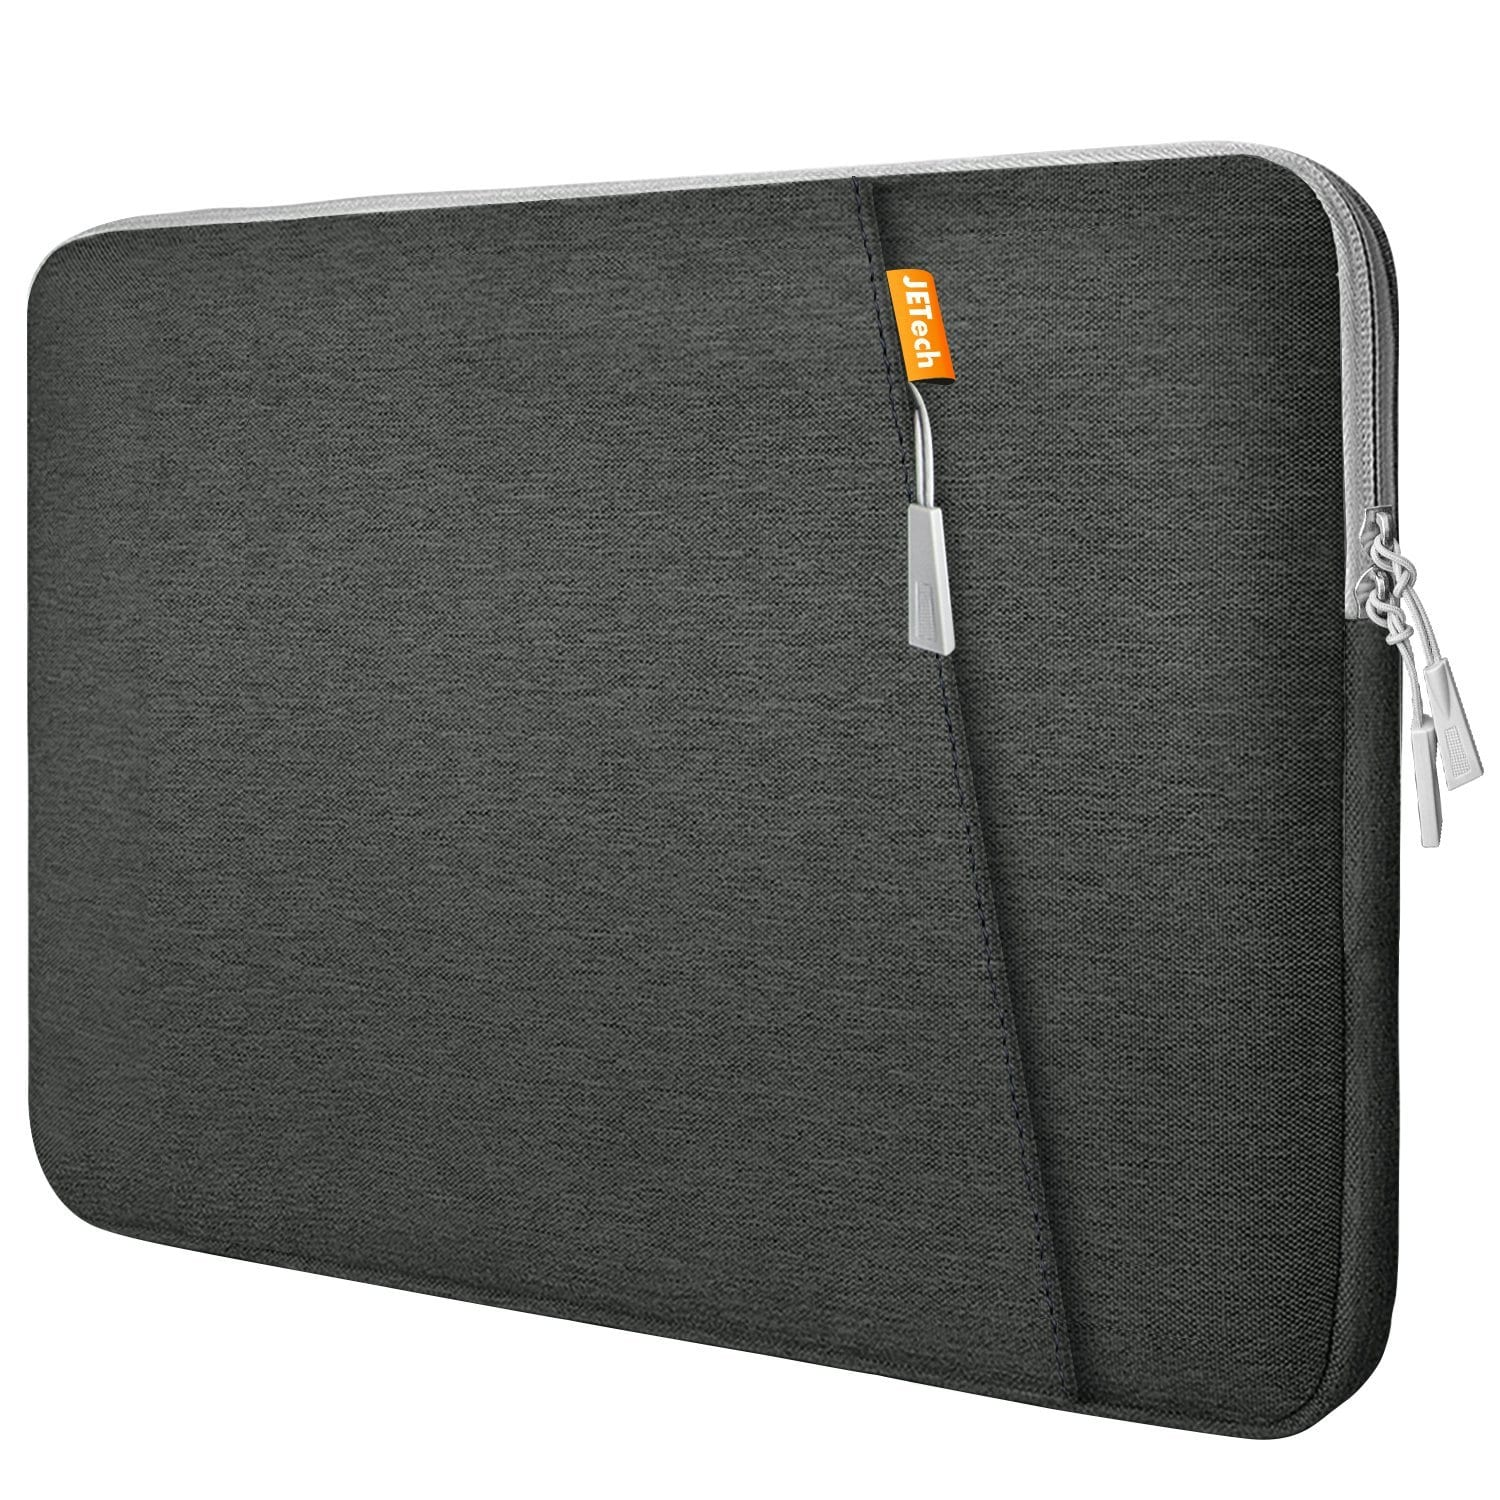 Top 8 Best Protective Laptop Sleeve Cases Reviews in 2019 486638f86